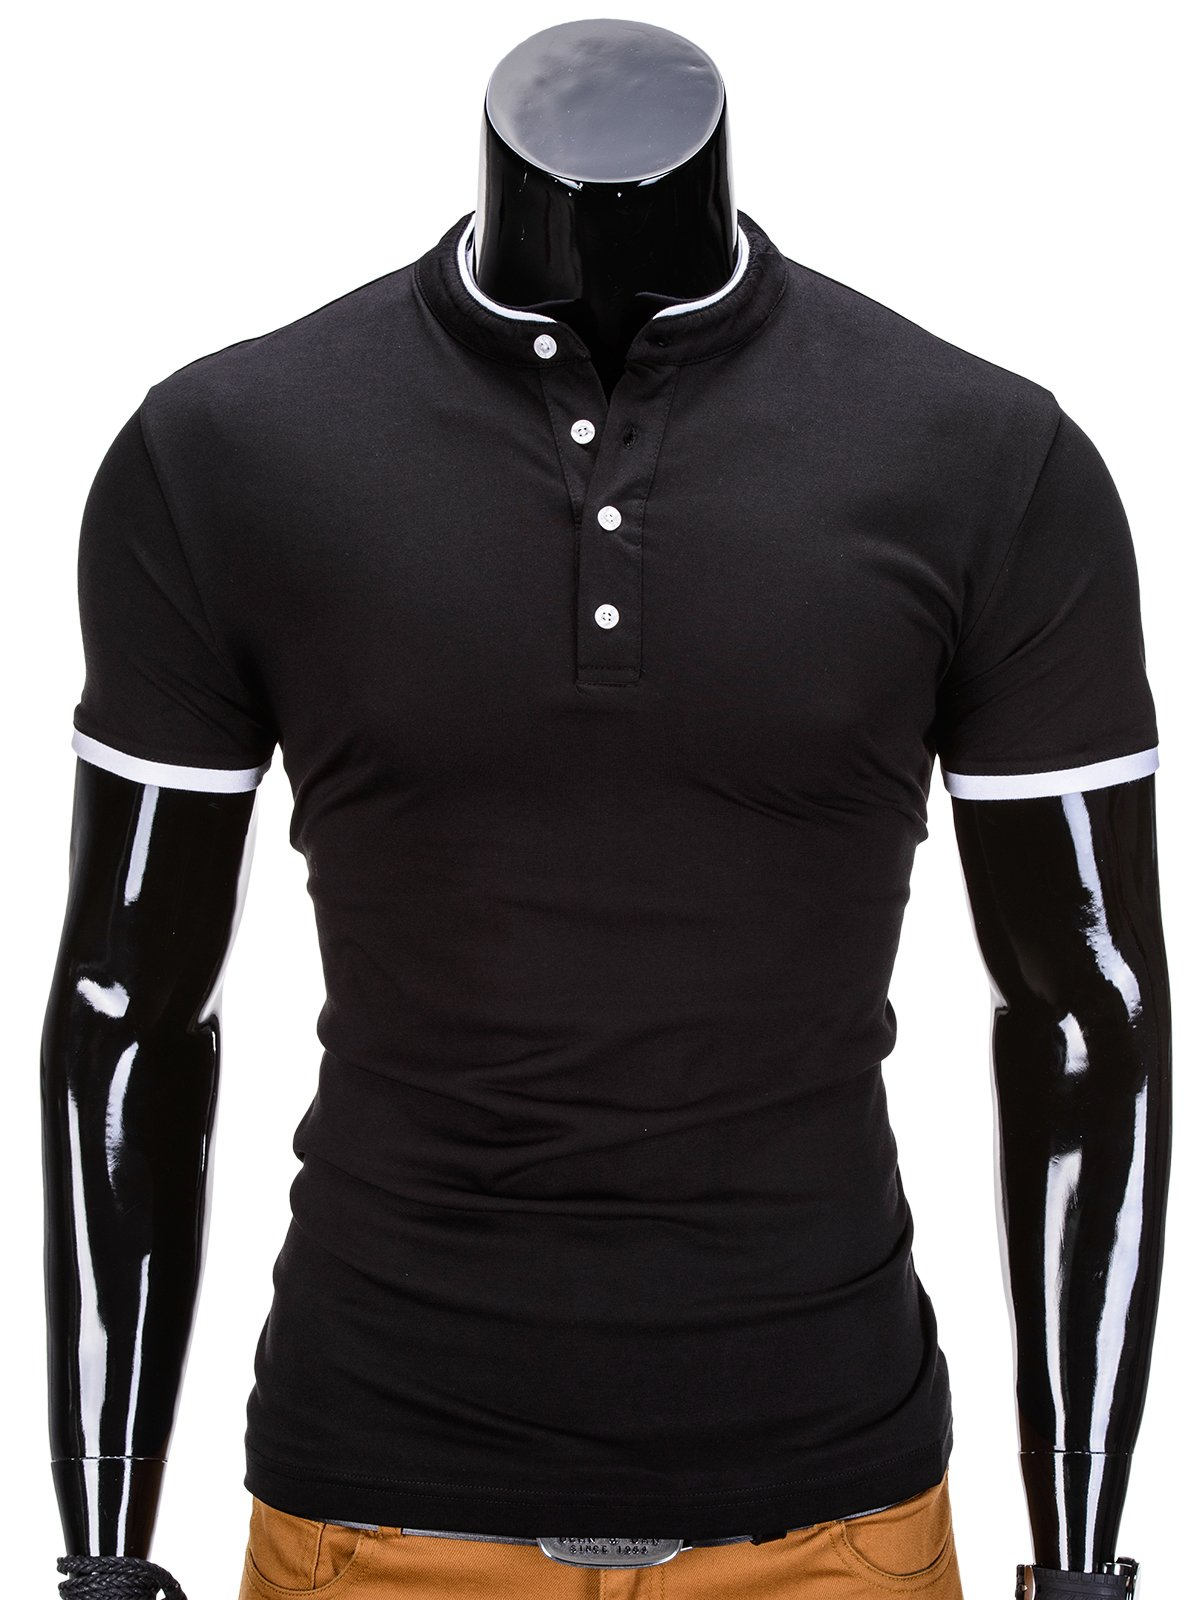 de5831e8 Plain Polo T Shirt Wholesale - DREAMWORKS